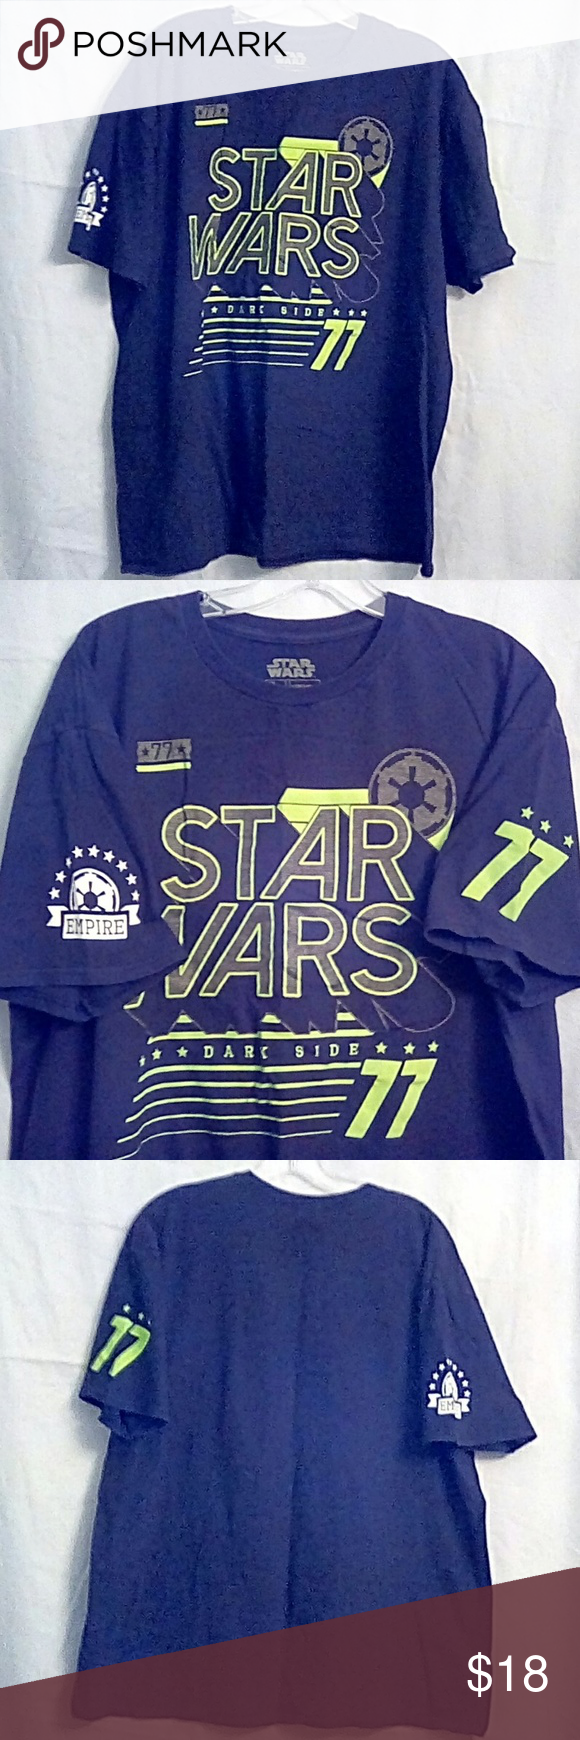 73cceae961 Star Wars Dark Side 77 T-Shirt Star Wars Dark Side 77 T-Shirt Very good  pre-owned condition. Tag says 2XL